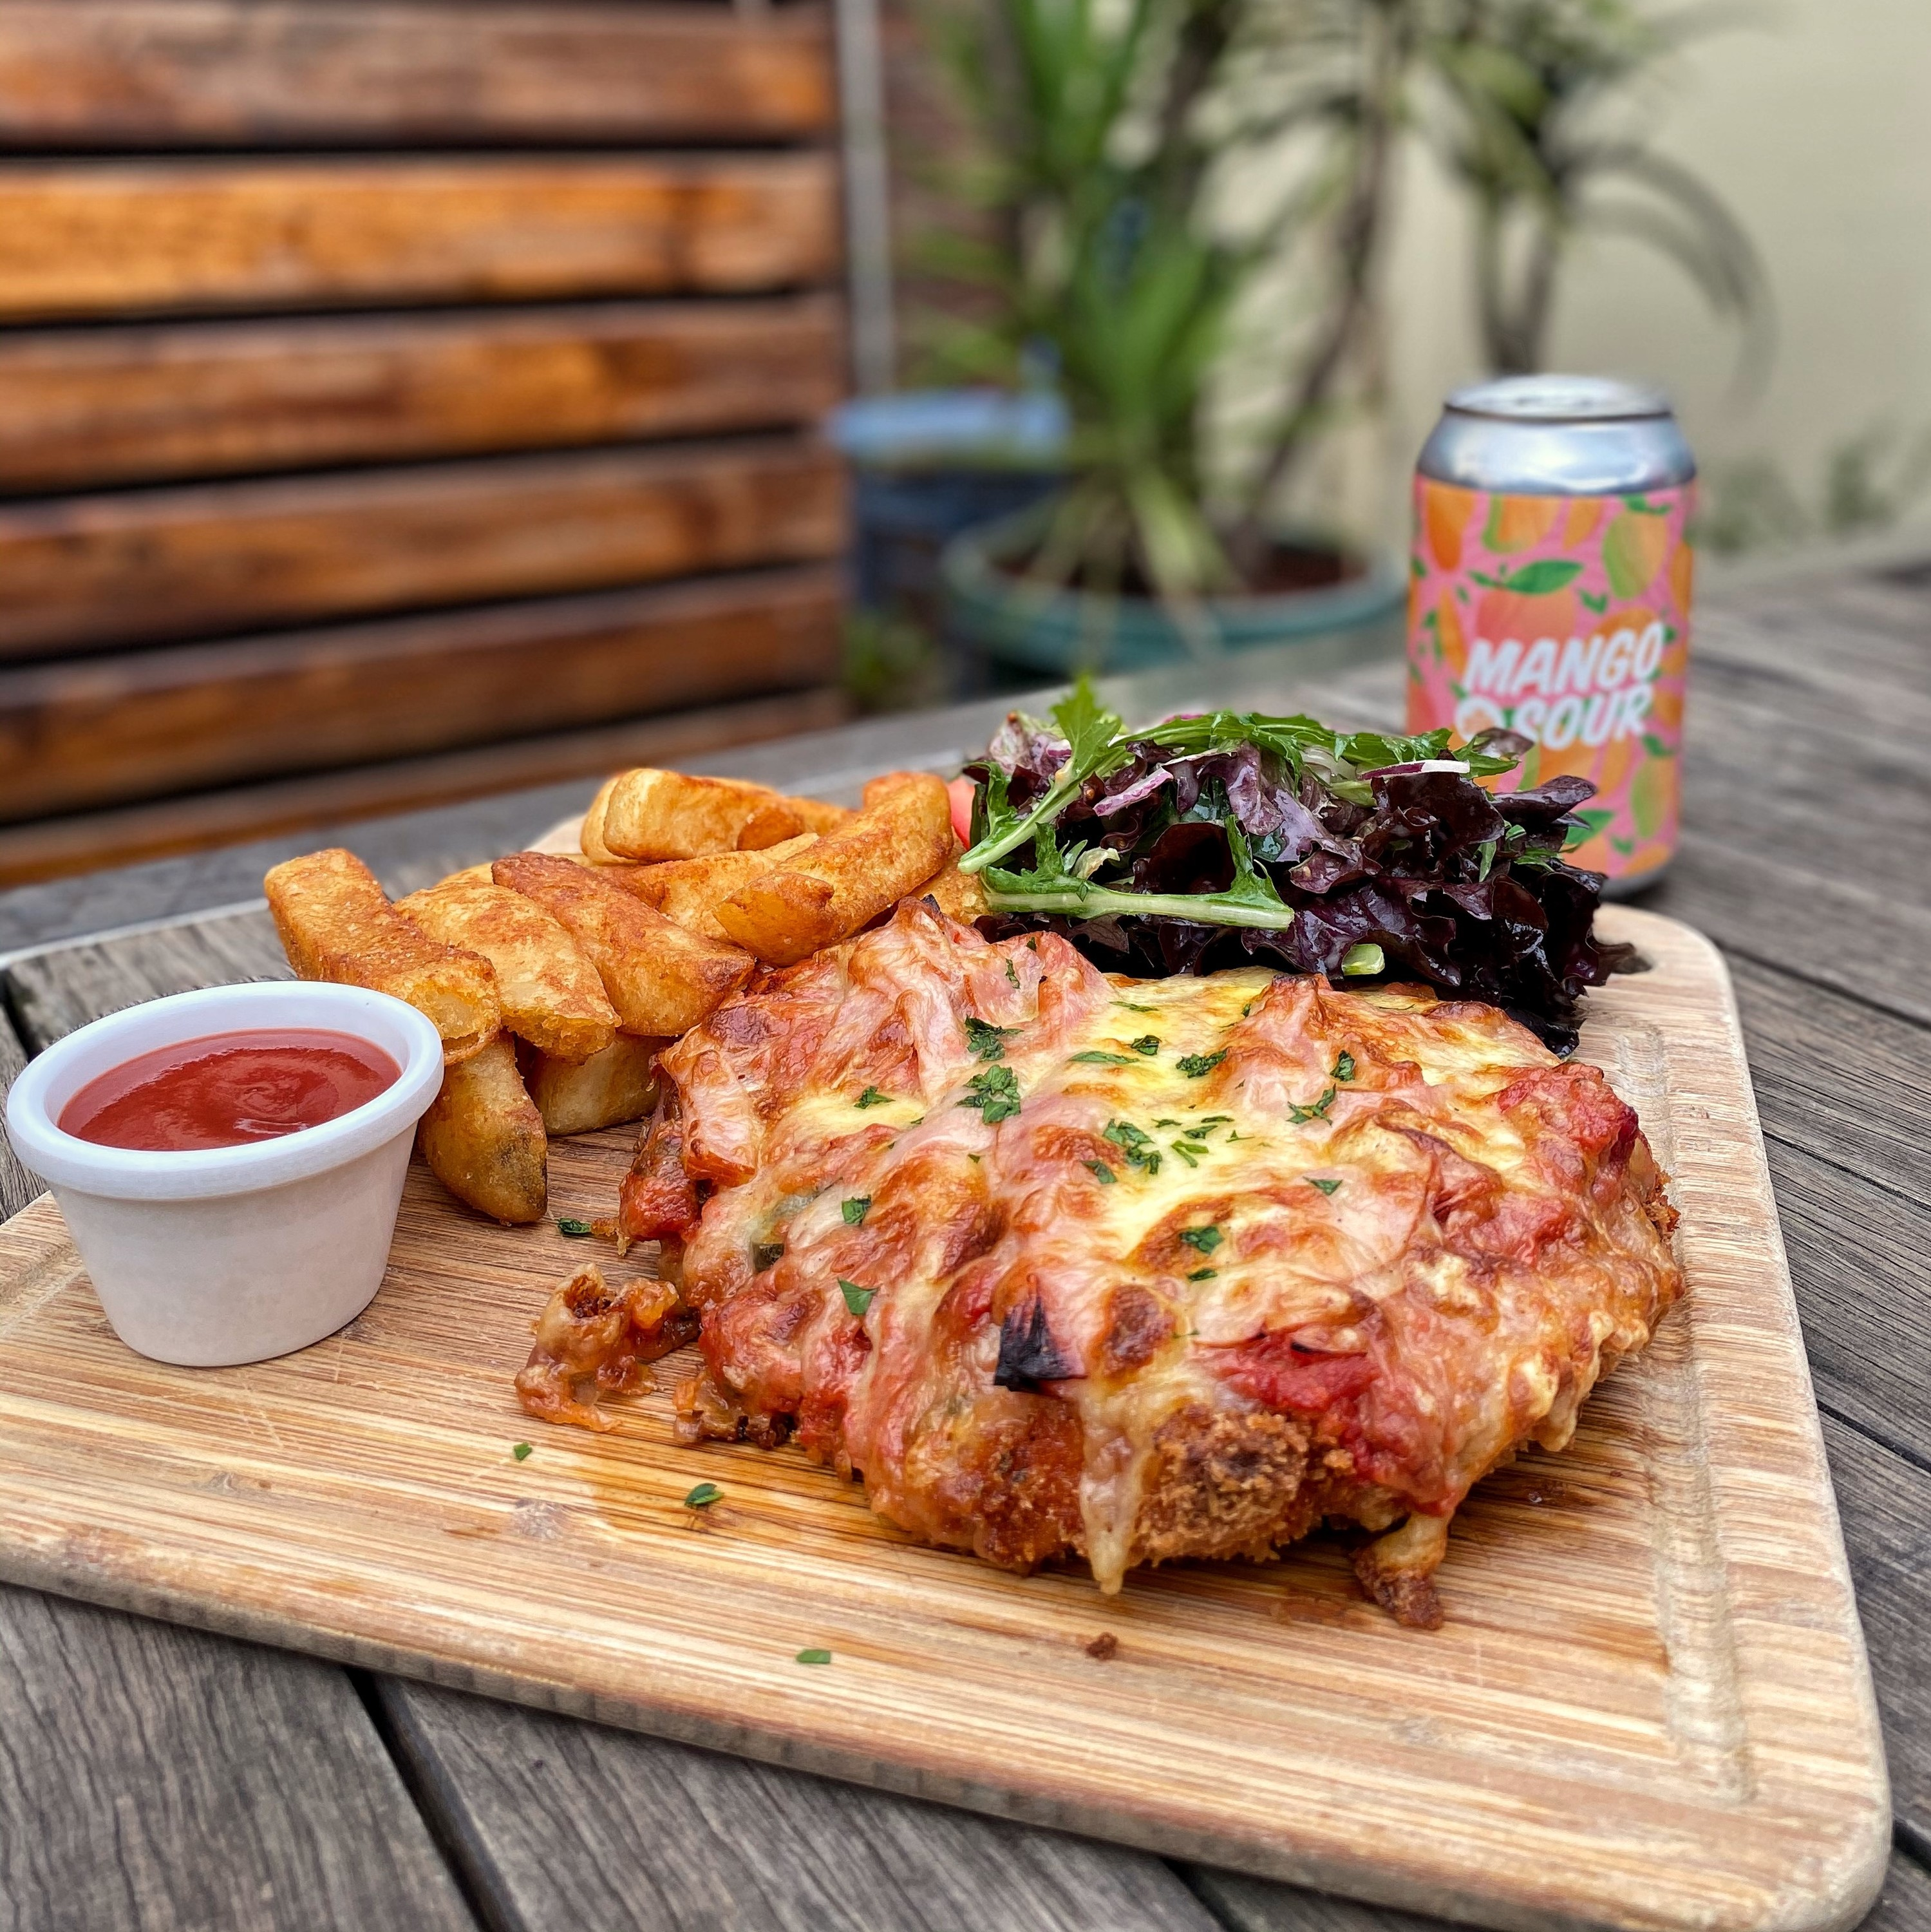 Chicken parma with chips, salad, tomato sauce and a beer